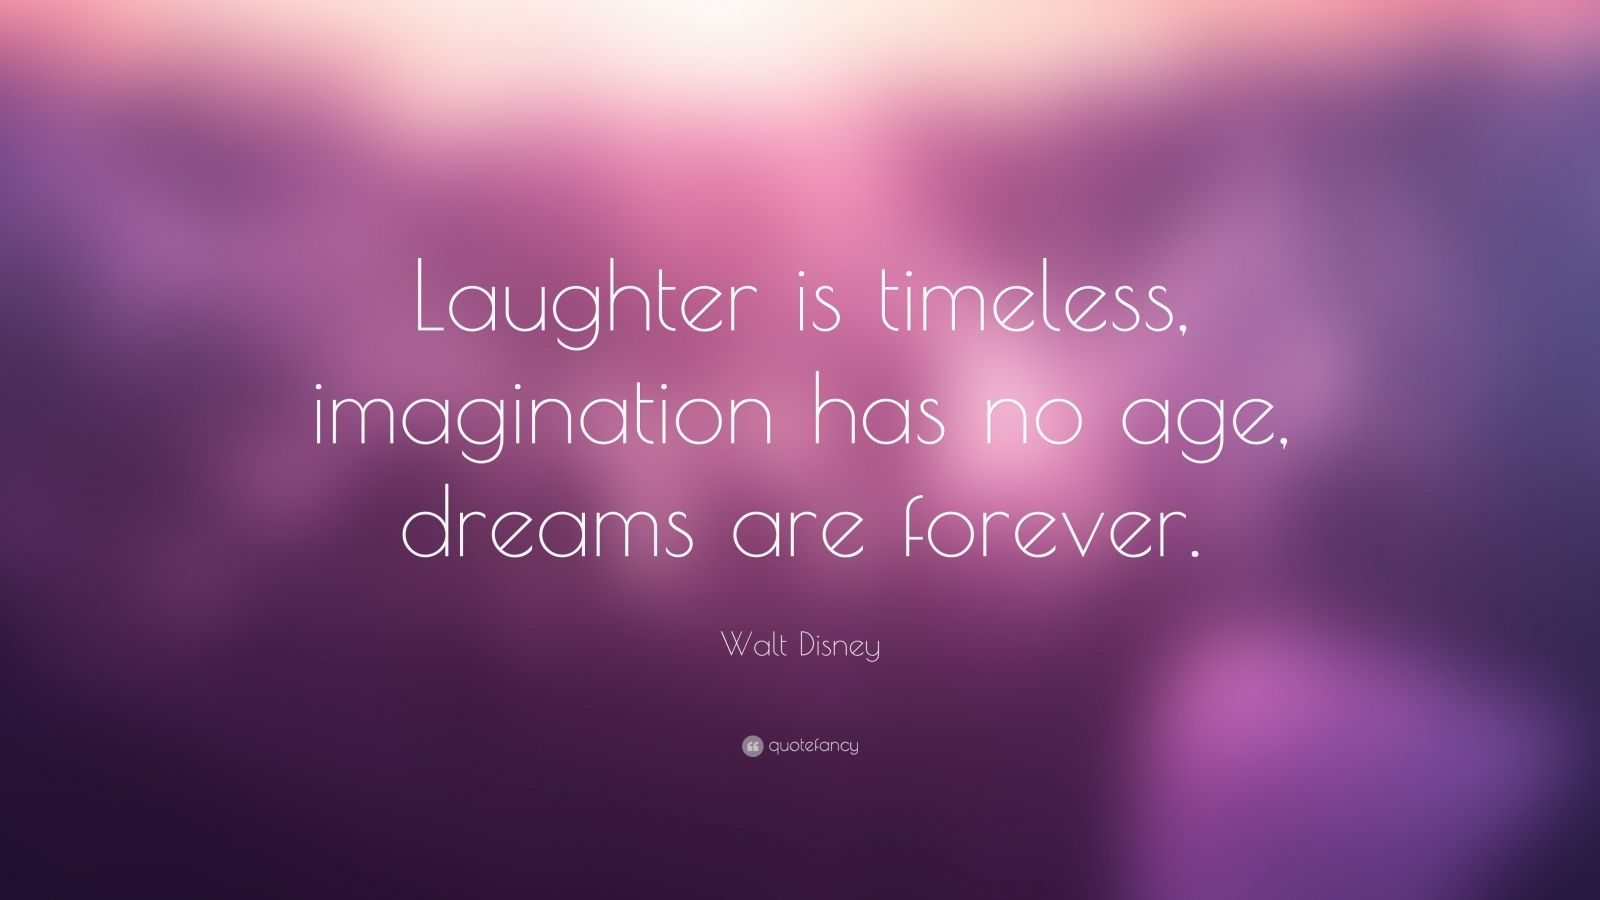 """Walt Disney Quote: """"Laughter is timeless, imagination has no age, dreams are forever."""""""